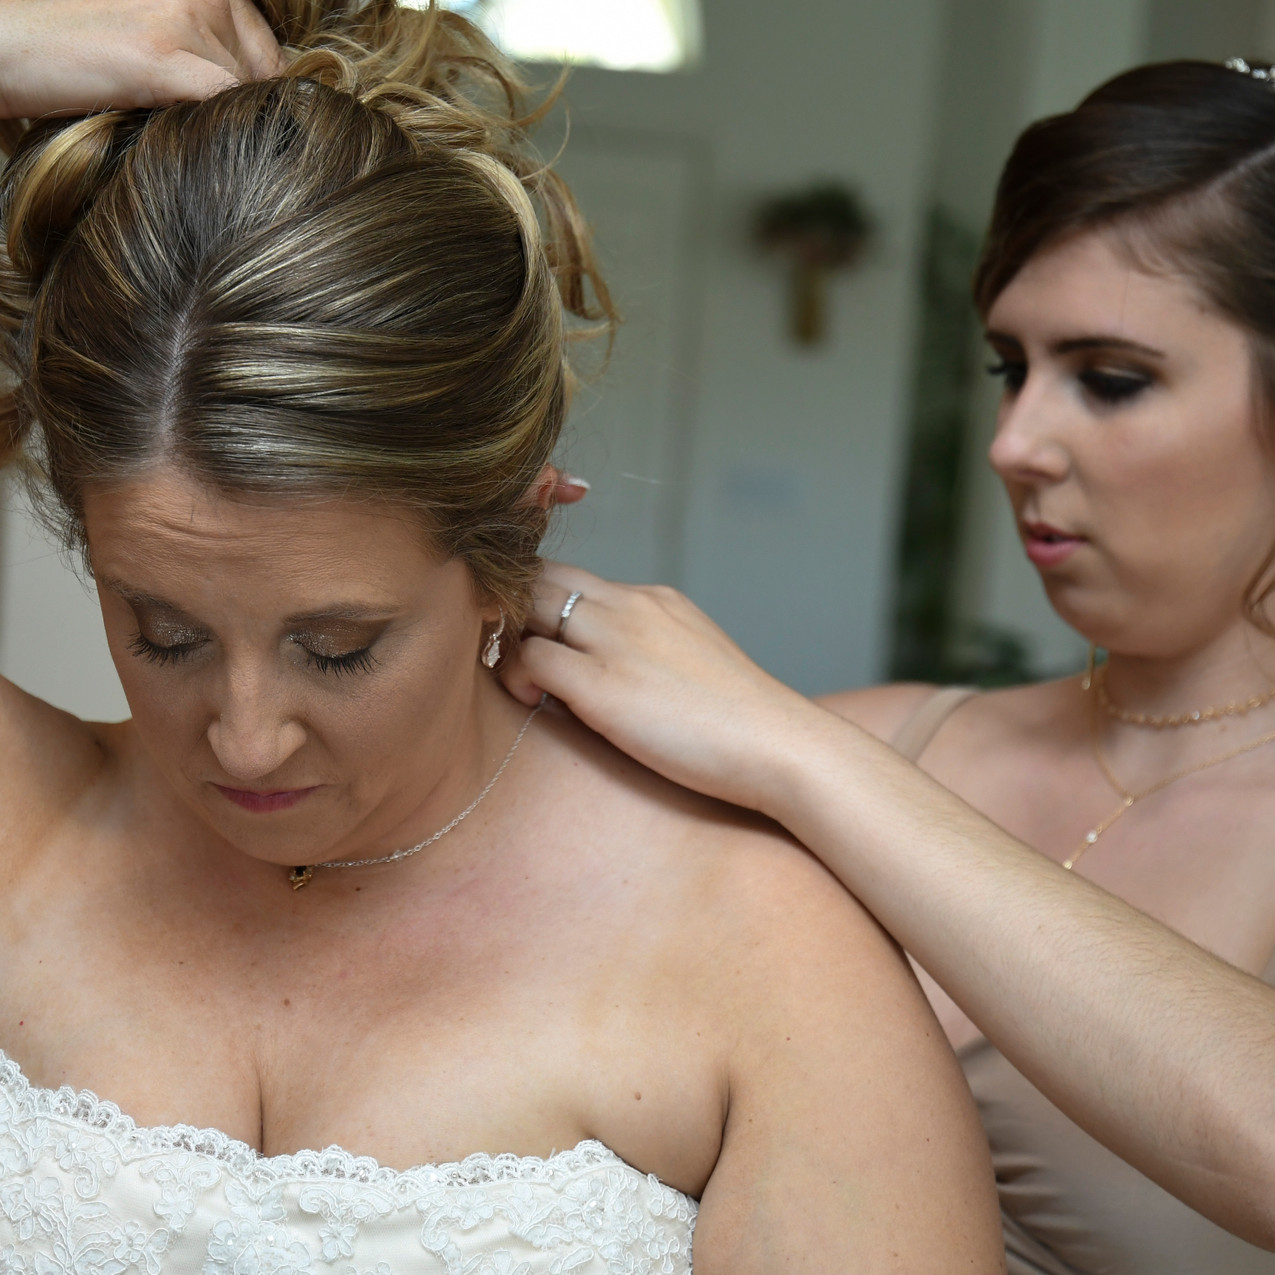 Priceless memories between the bridal party and bride during wedding prep.